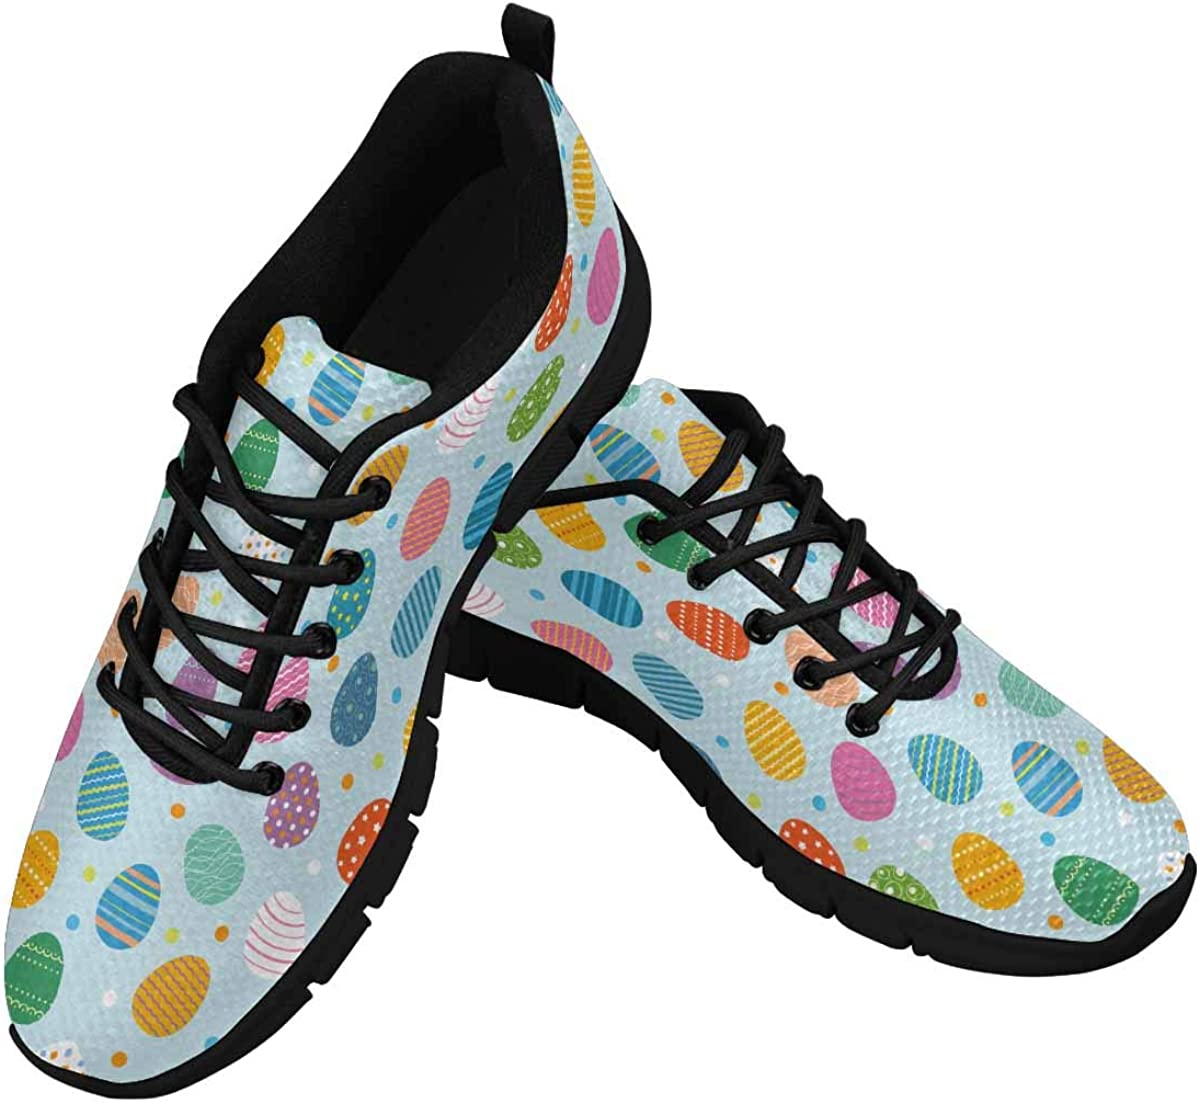 INTERESTPRINT Easter Eggs for Easter Holidays Women's Running Shoes Mesh Breathable Sports Casual Shoes